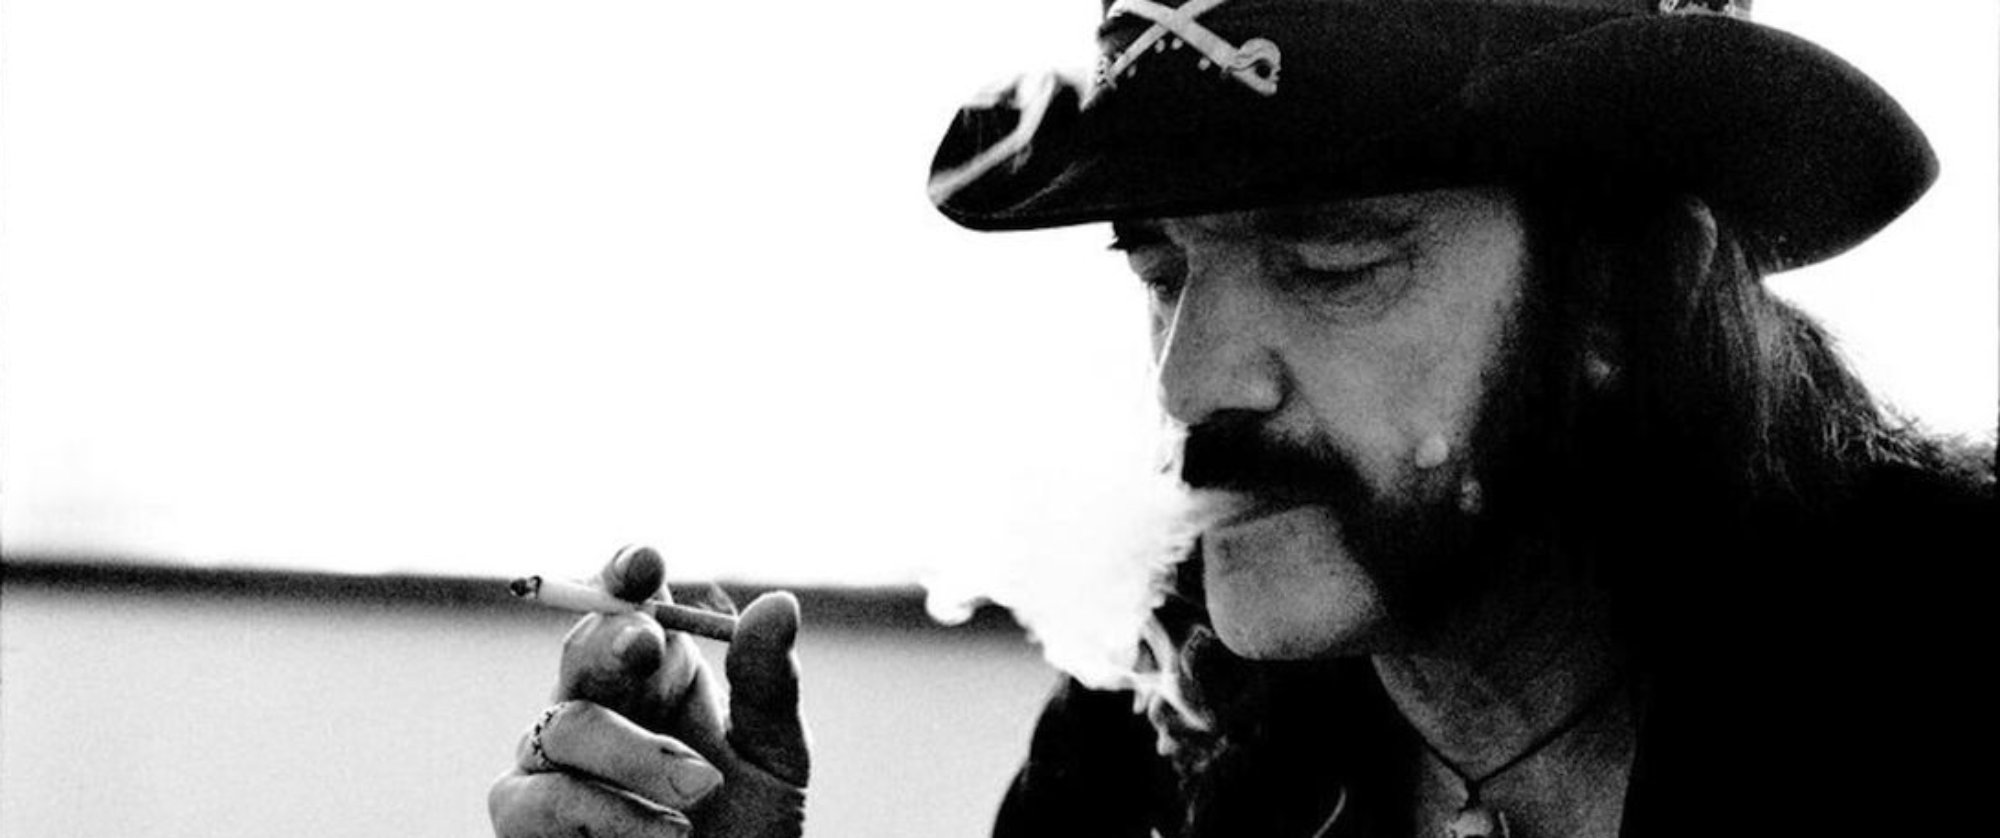 Lemmy by Ross Halfin